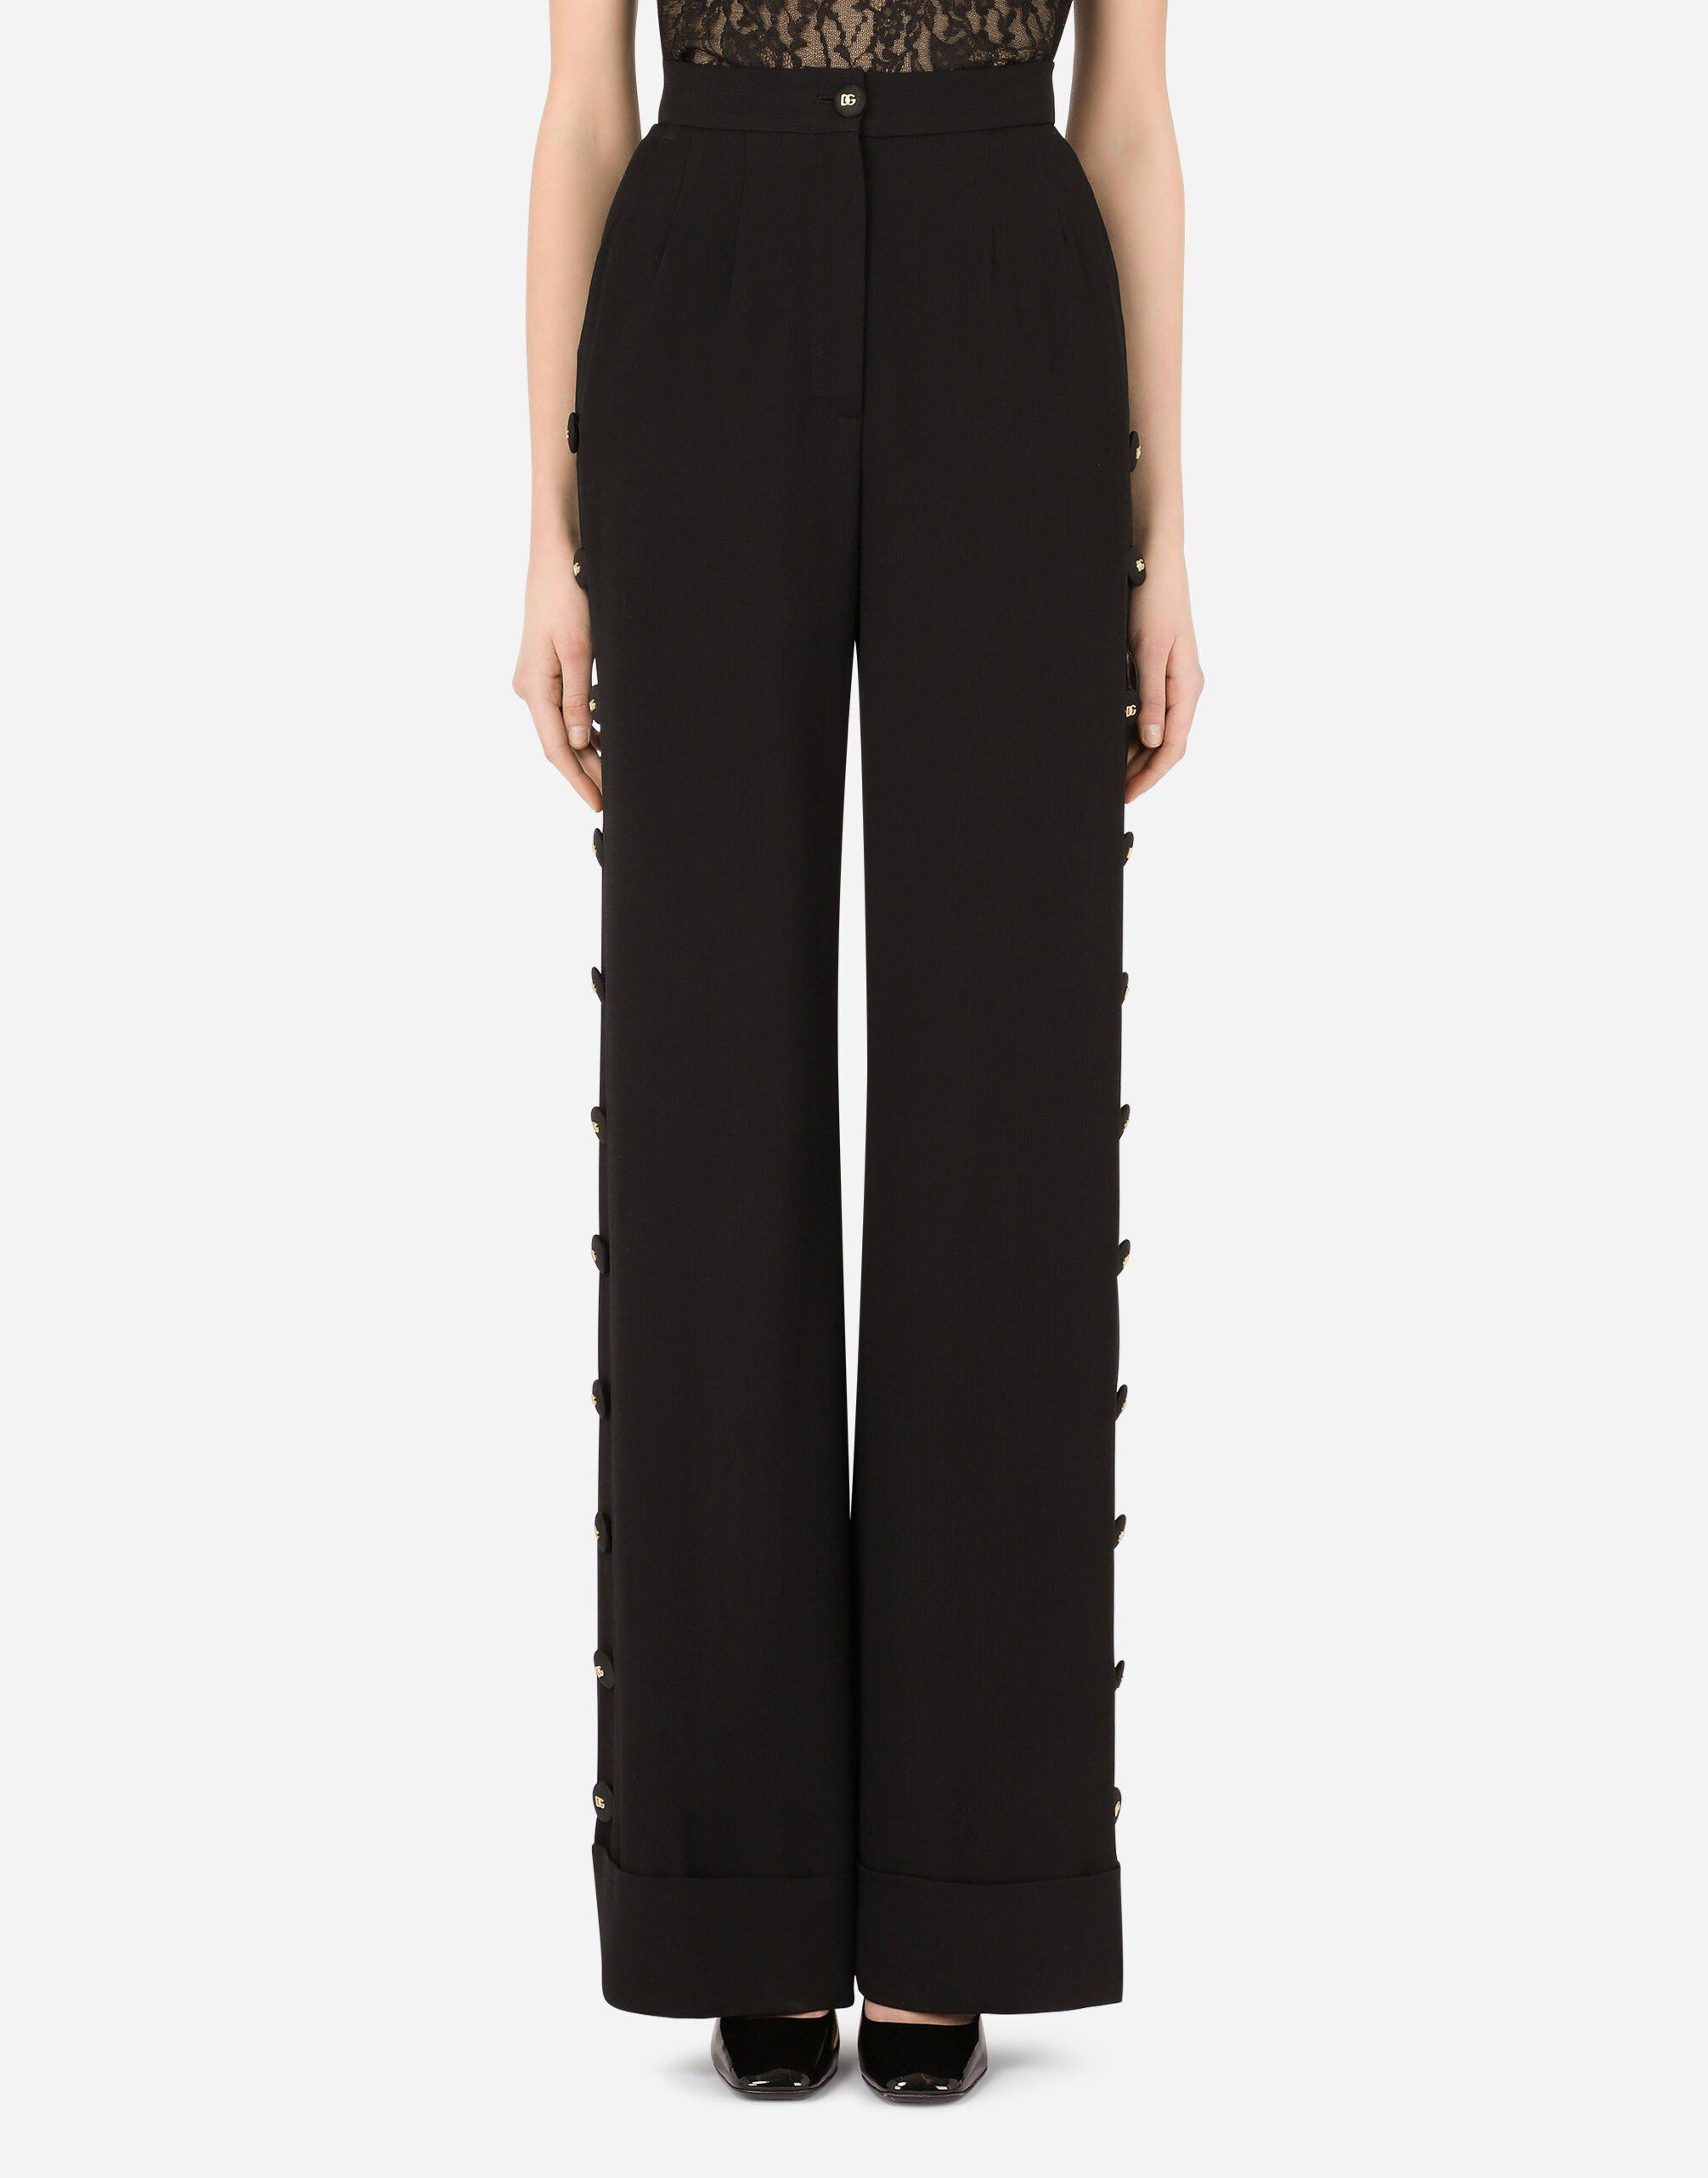 Piqué palazzo pants with buttons and turn-ups